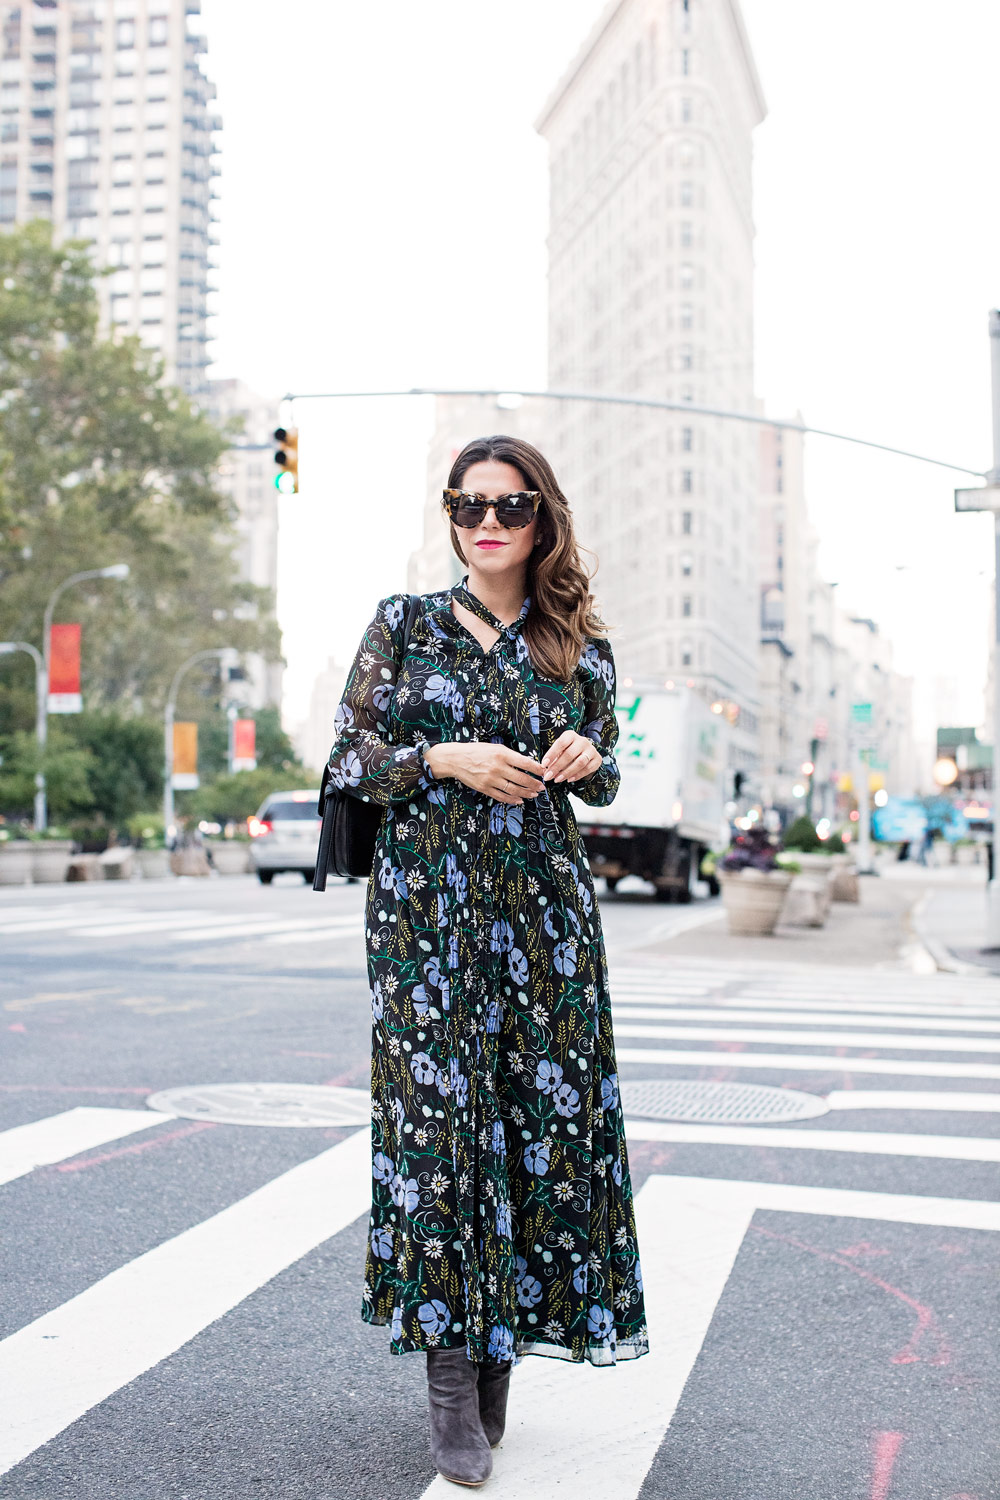 Maternity Style Floral Dress In Fall Olivia Jeanette